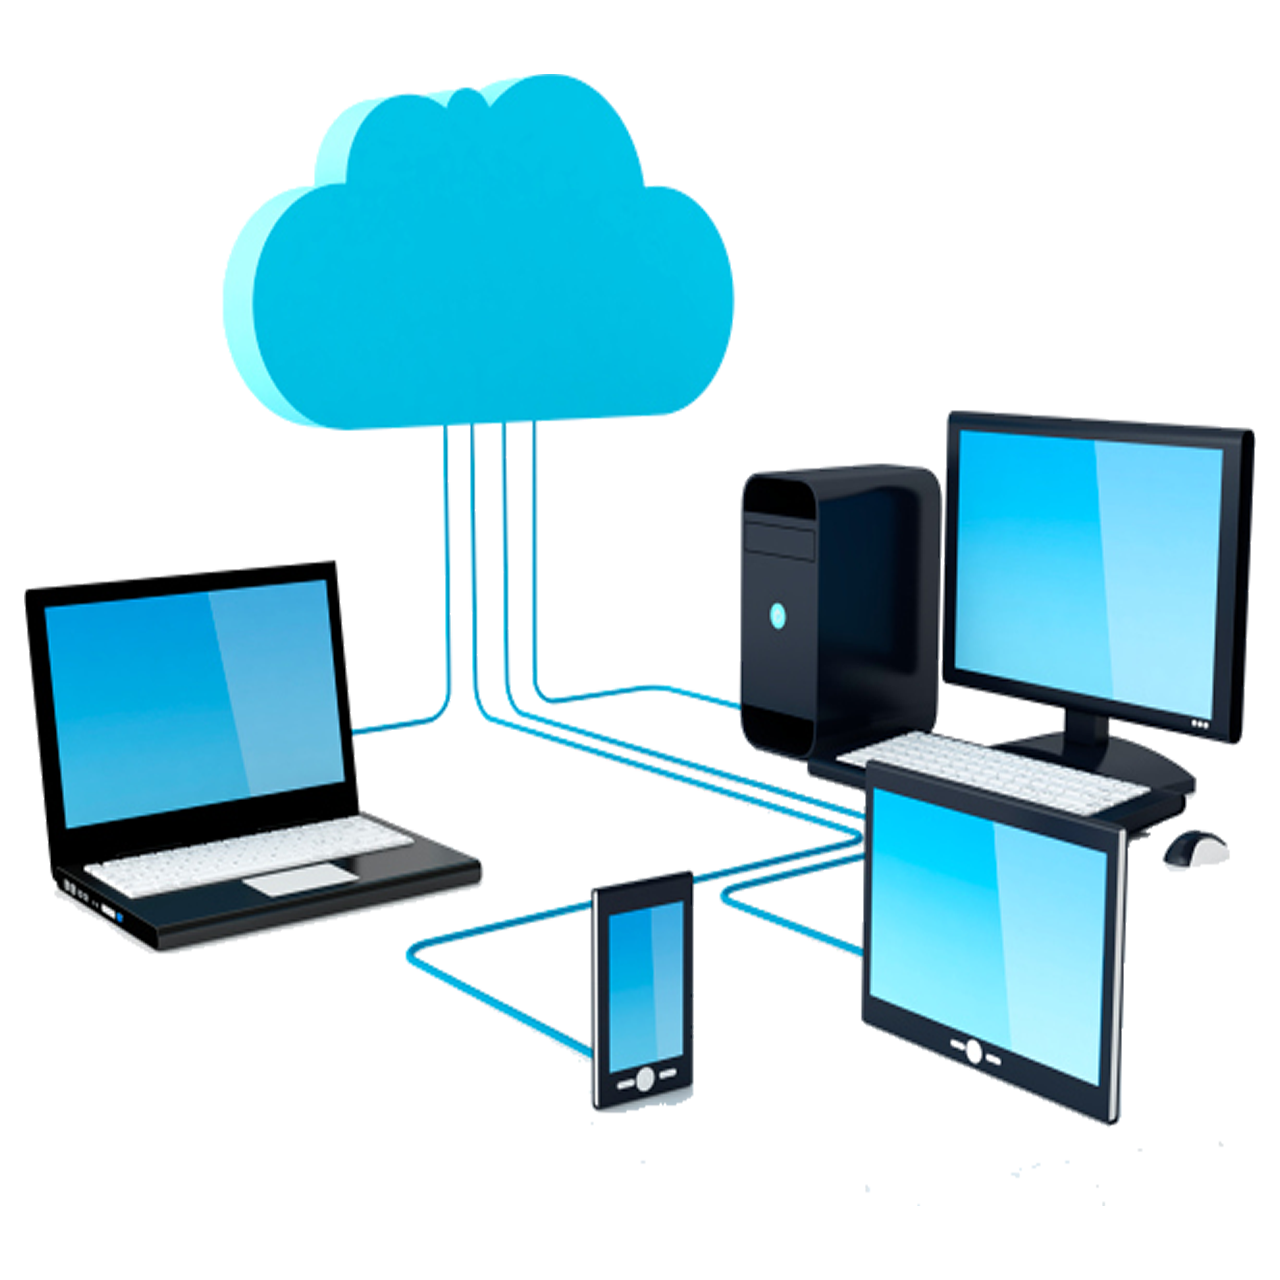 Networking Computing Storage Internet Security Transparent Cloud PNG Image